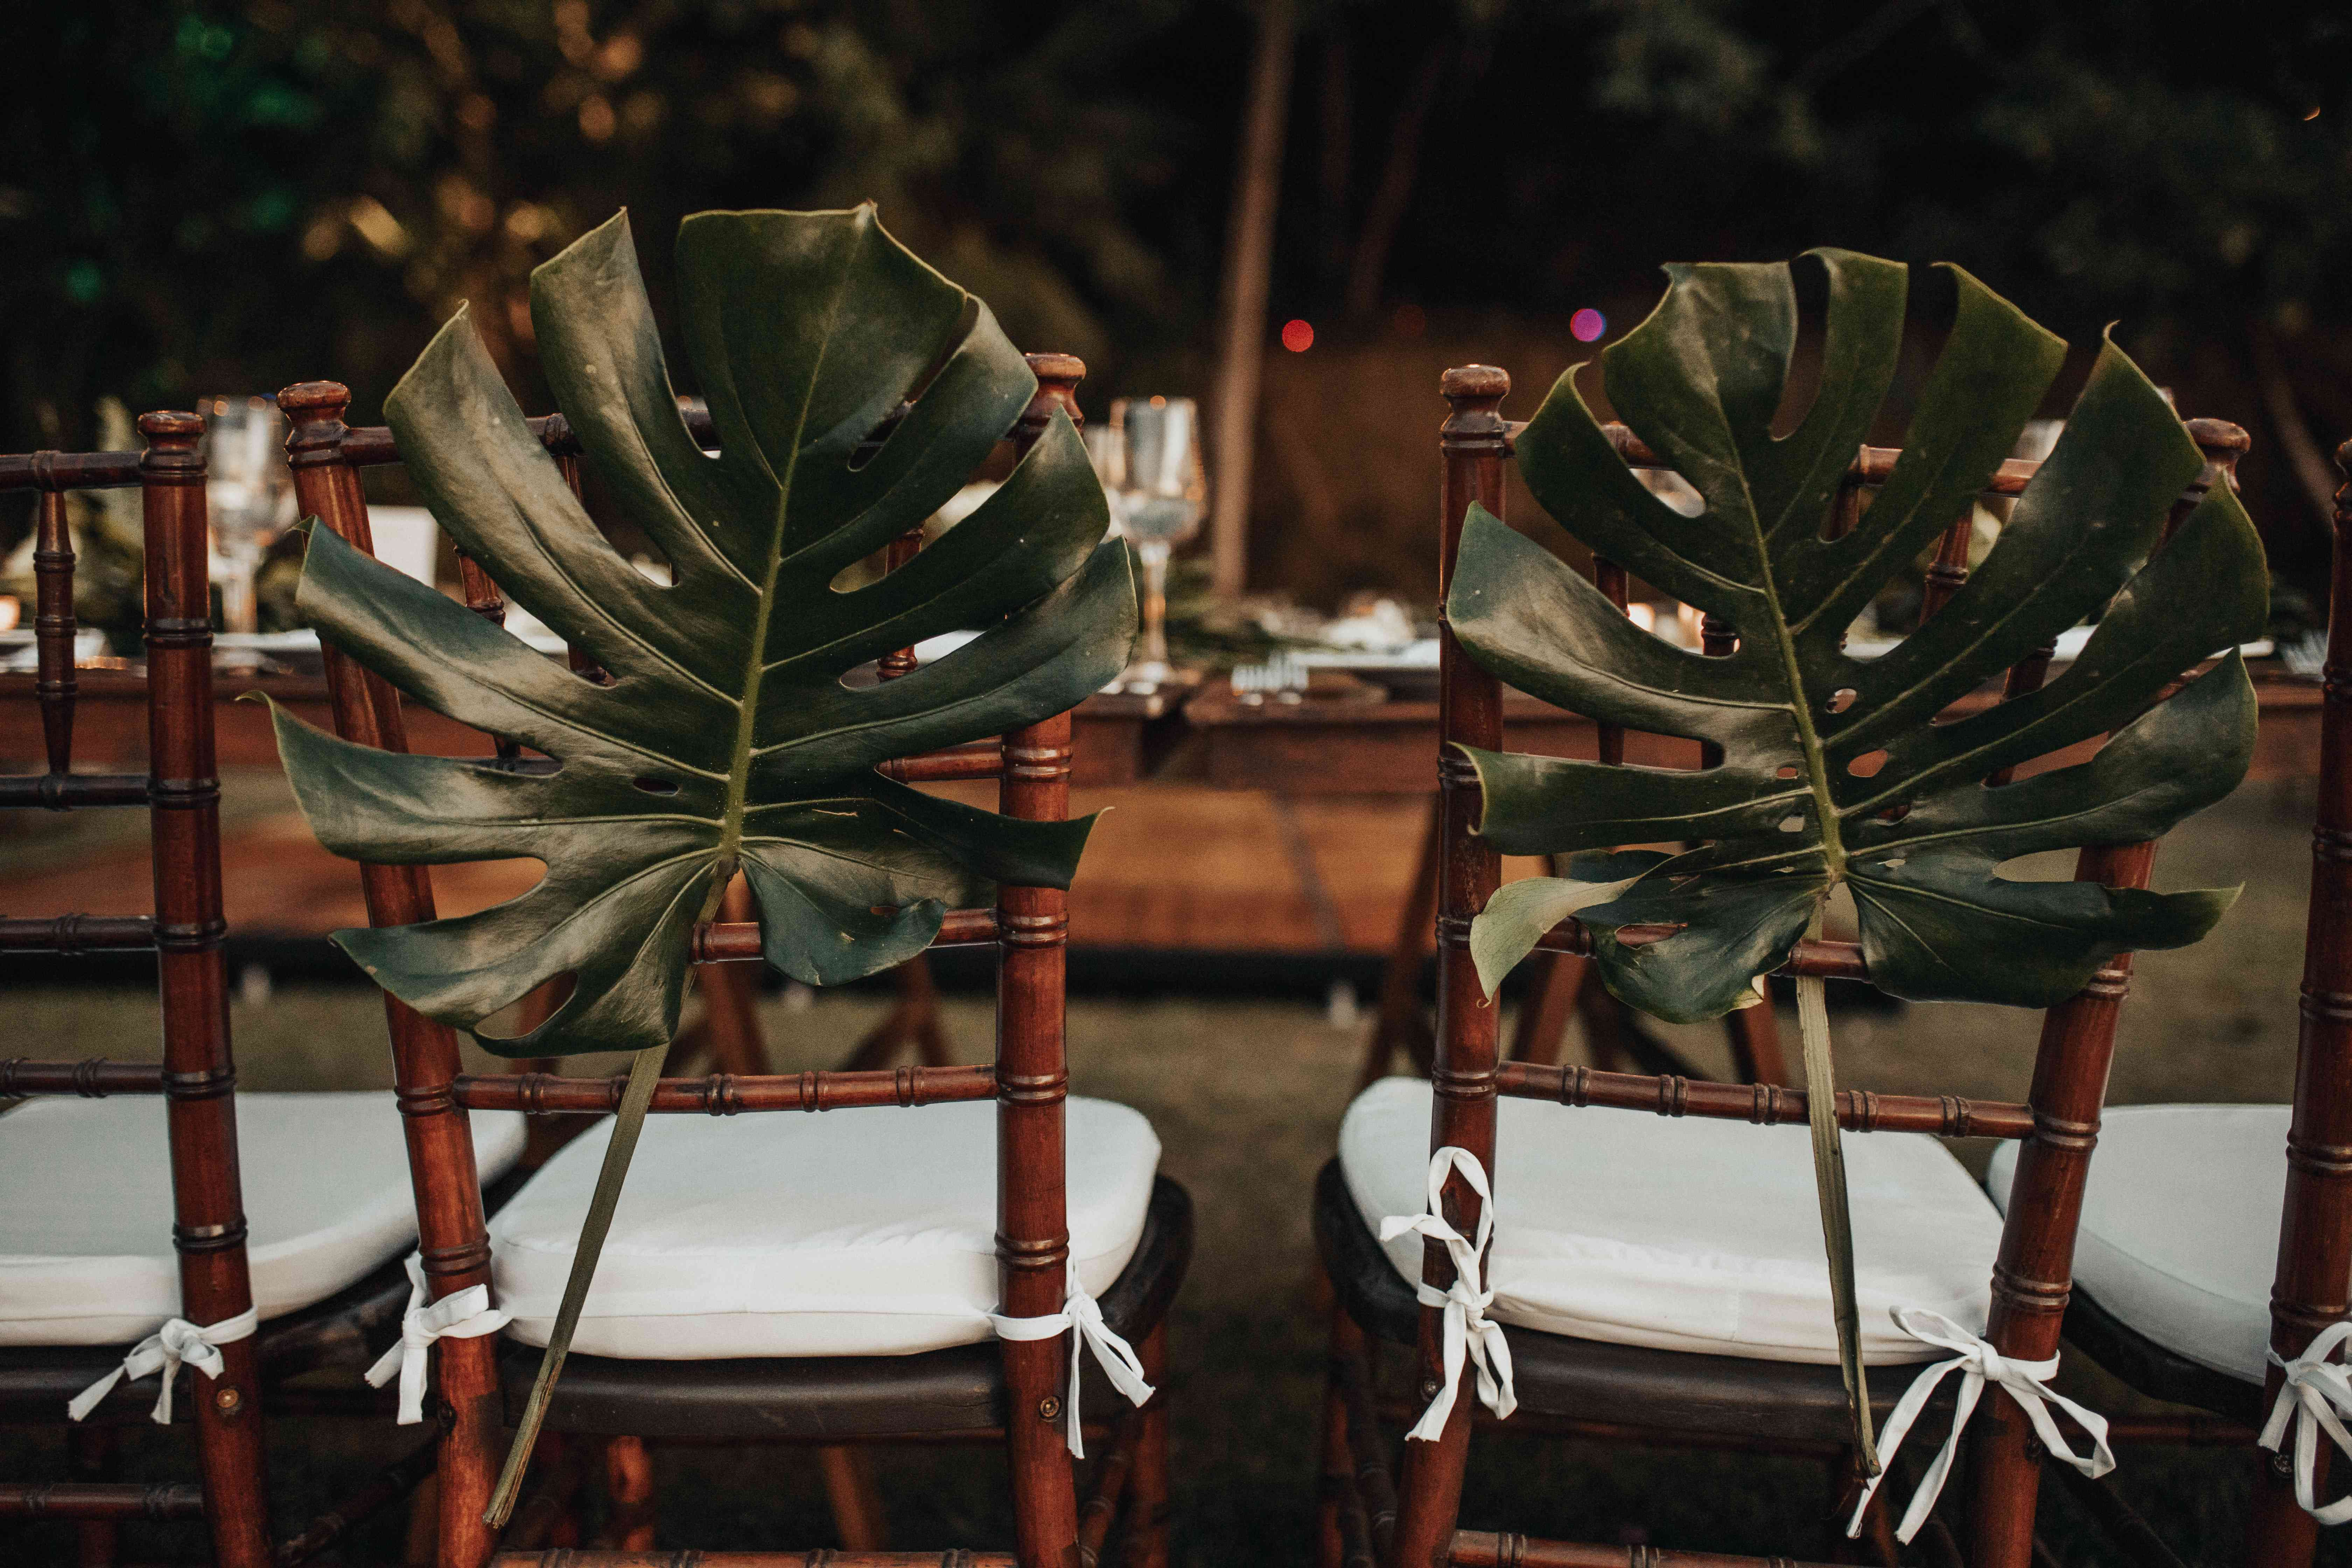 <p>Monstera leaves on chairs</p><br><br>